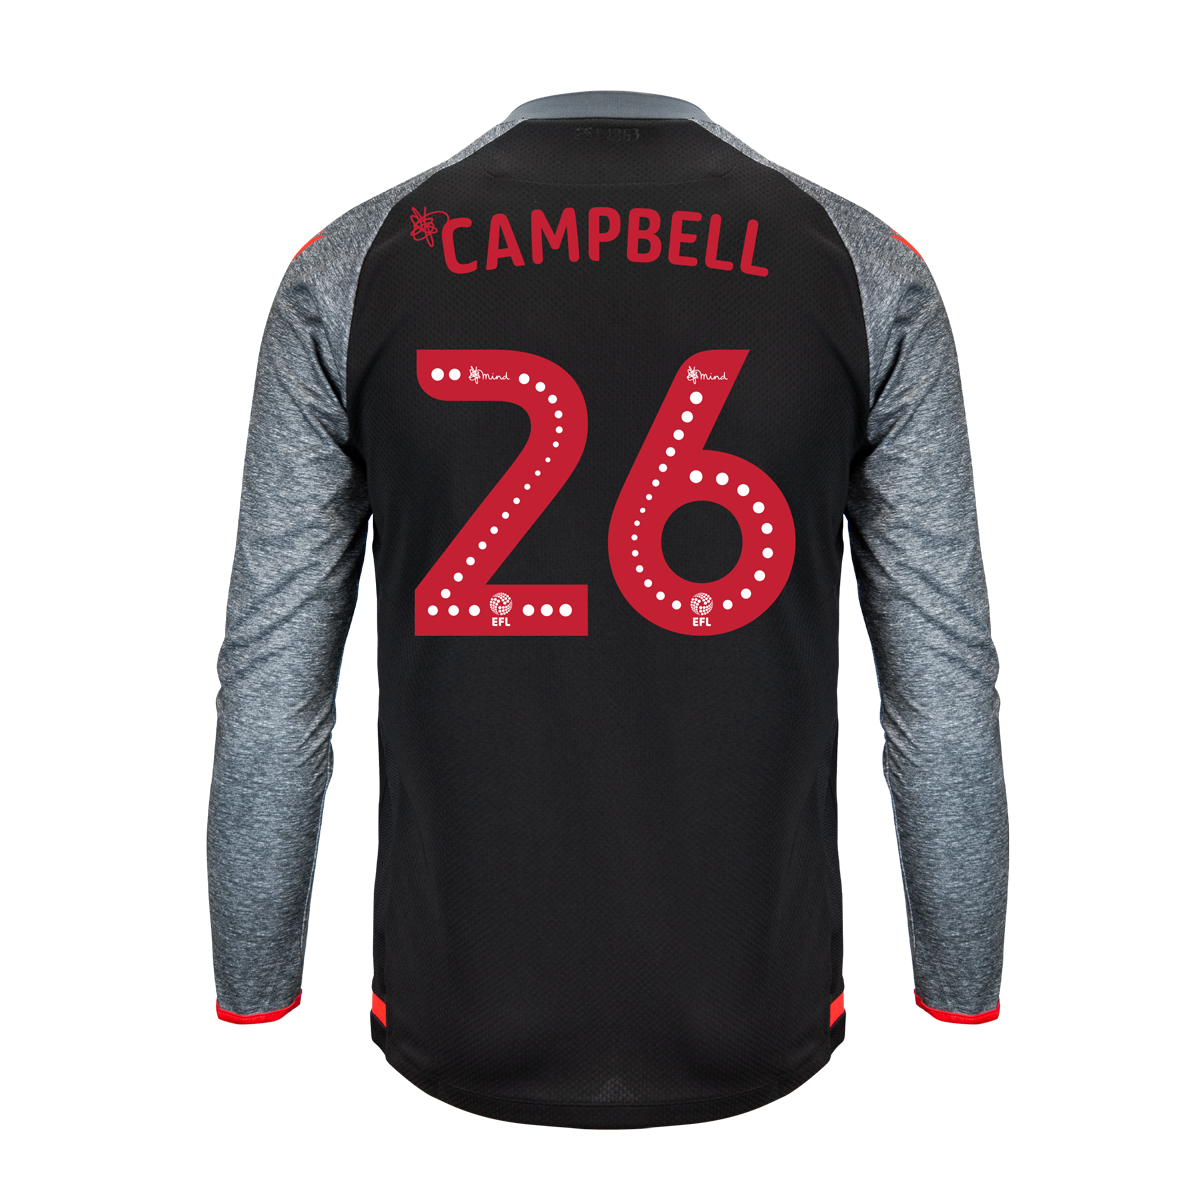 2019/20 Adult Away LS Shirt - Campbell